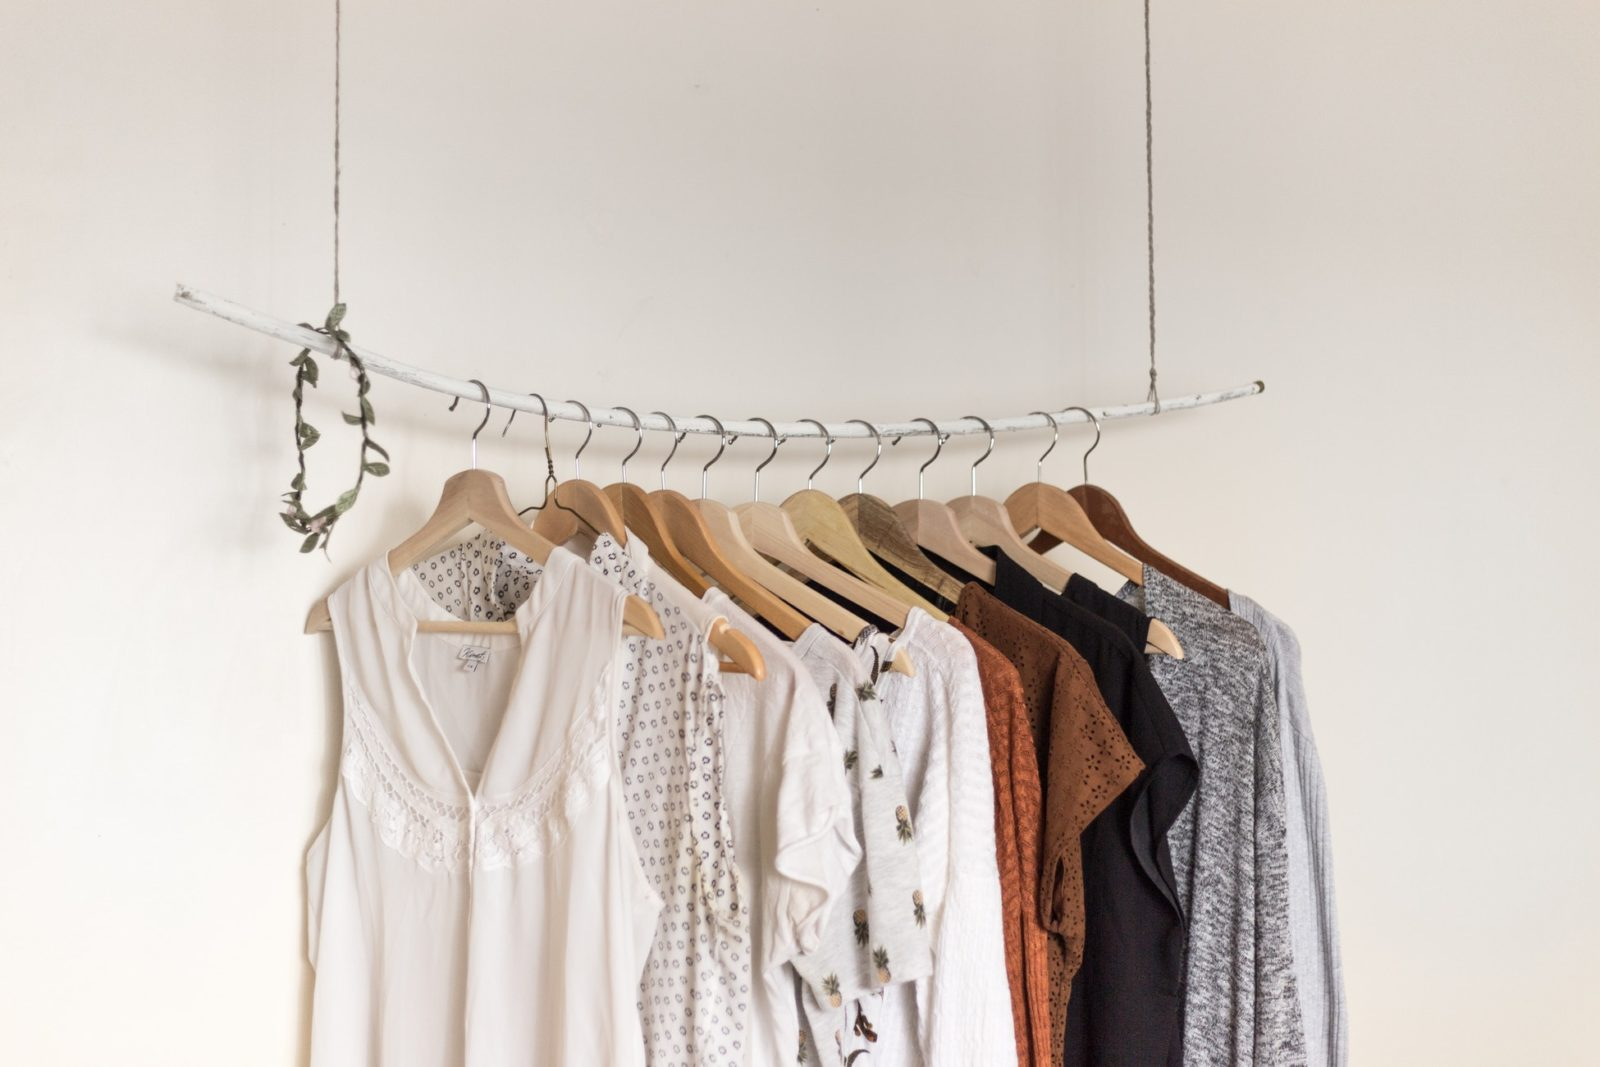 Clothing on a a rack